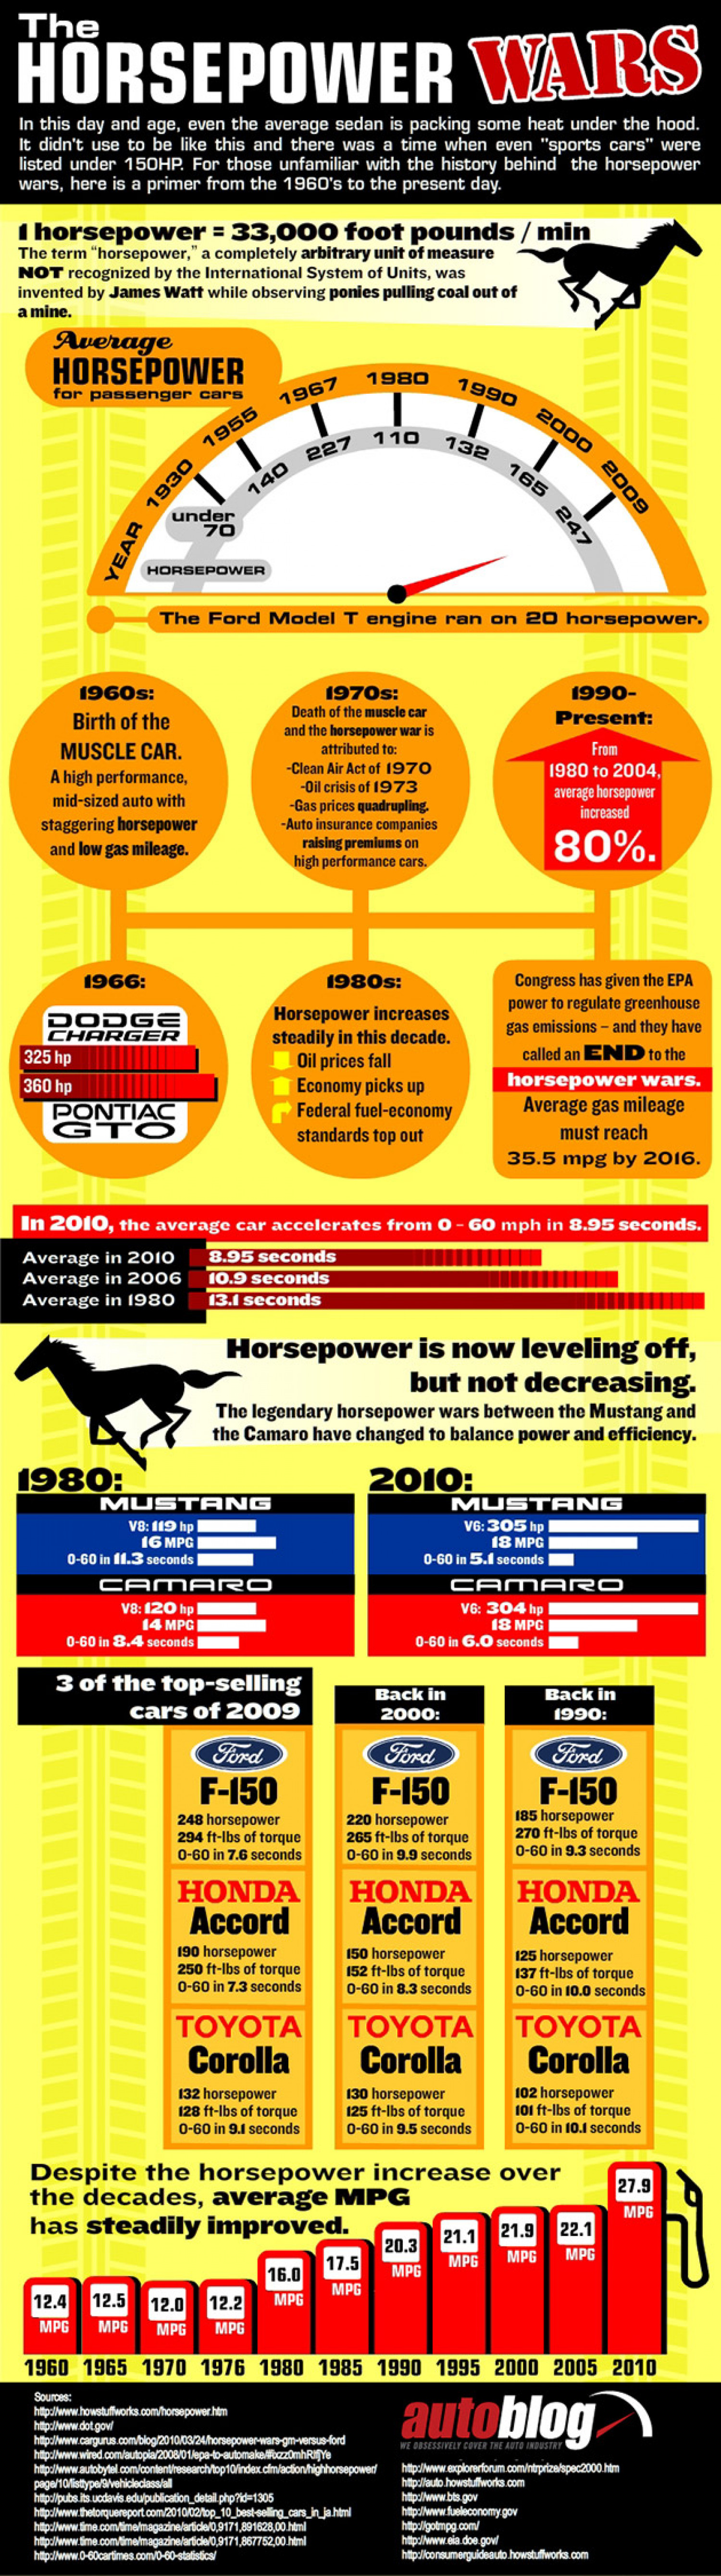 The Horsepower Wars Infographic